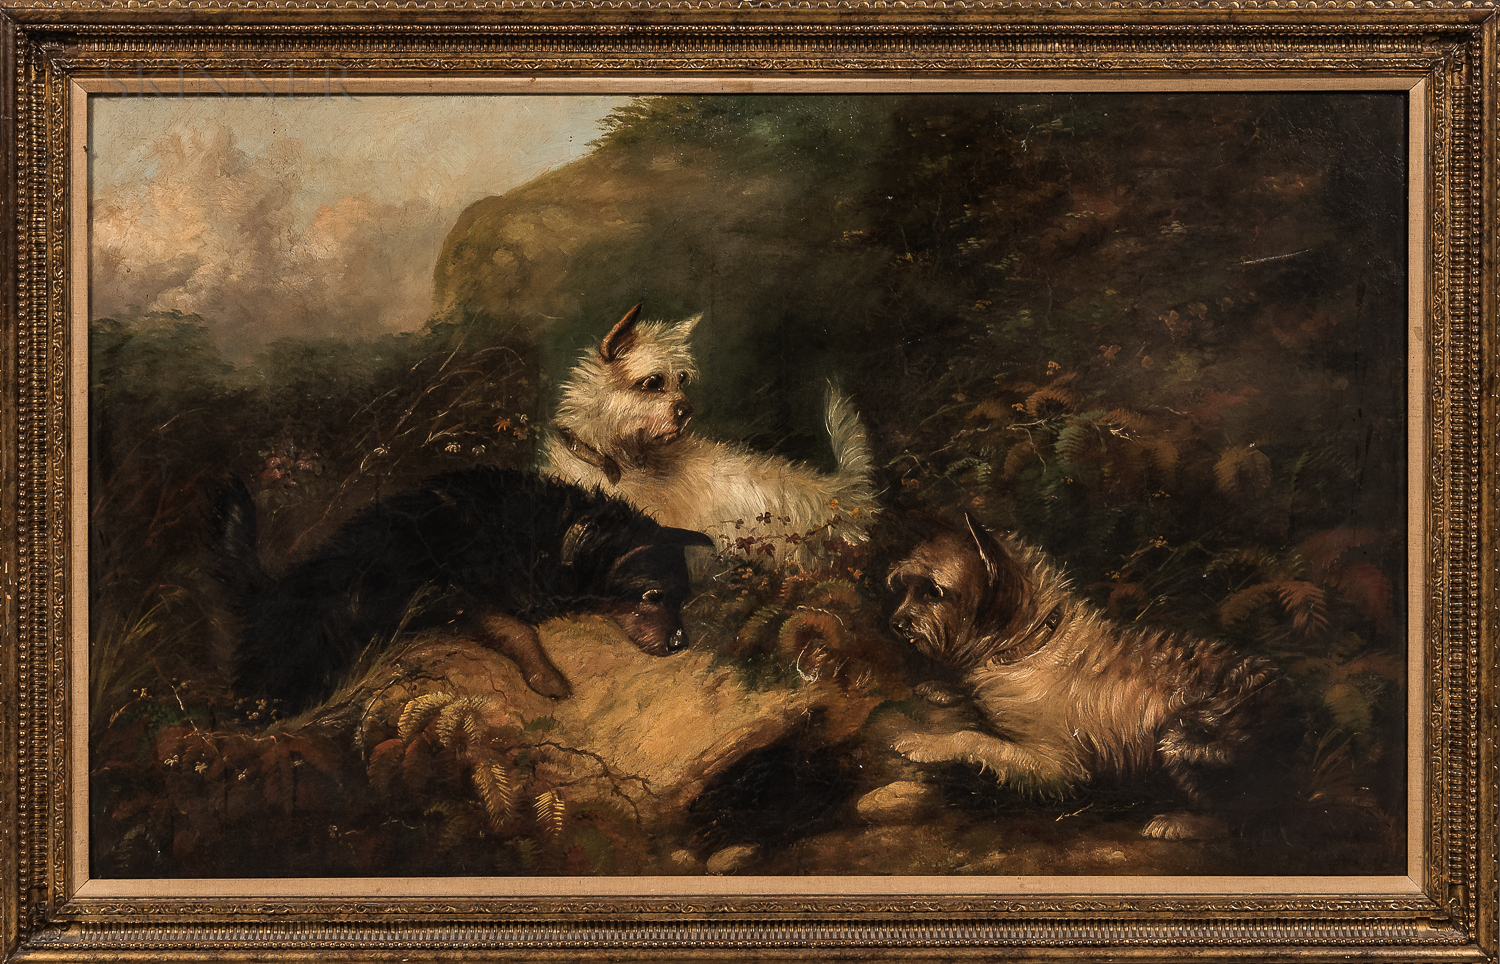 Attributed to George (Smith) Armfield (British, 1808-1893) - Image 2 of 3